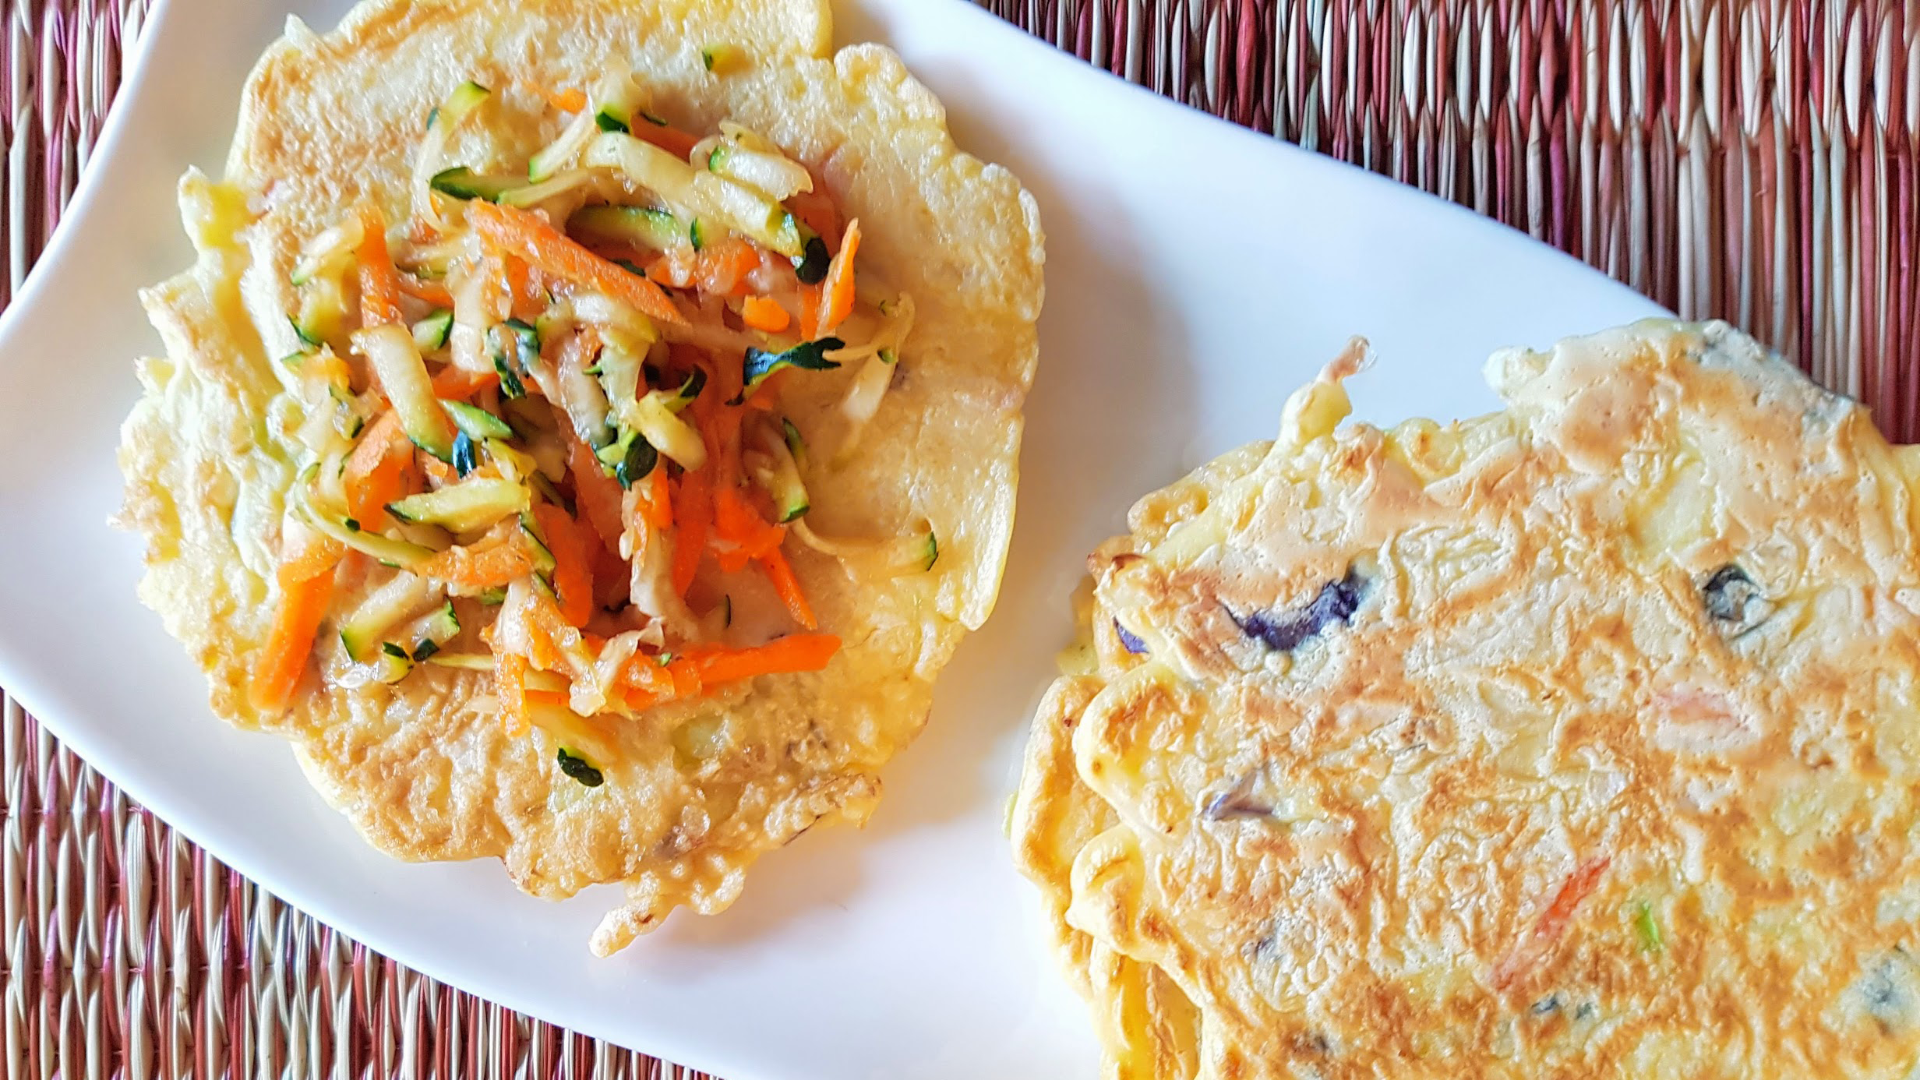 Two Japanese inspired savoury pancakes on a plate